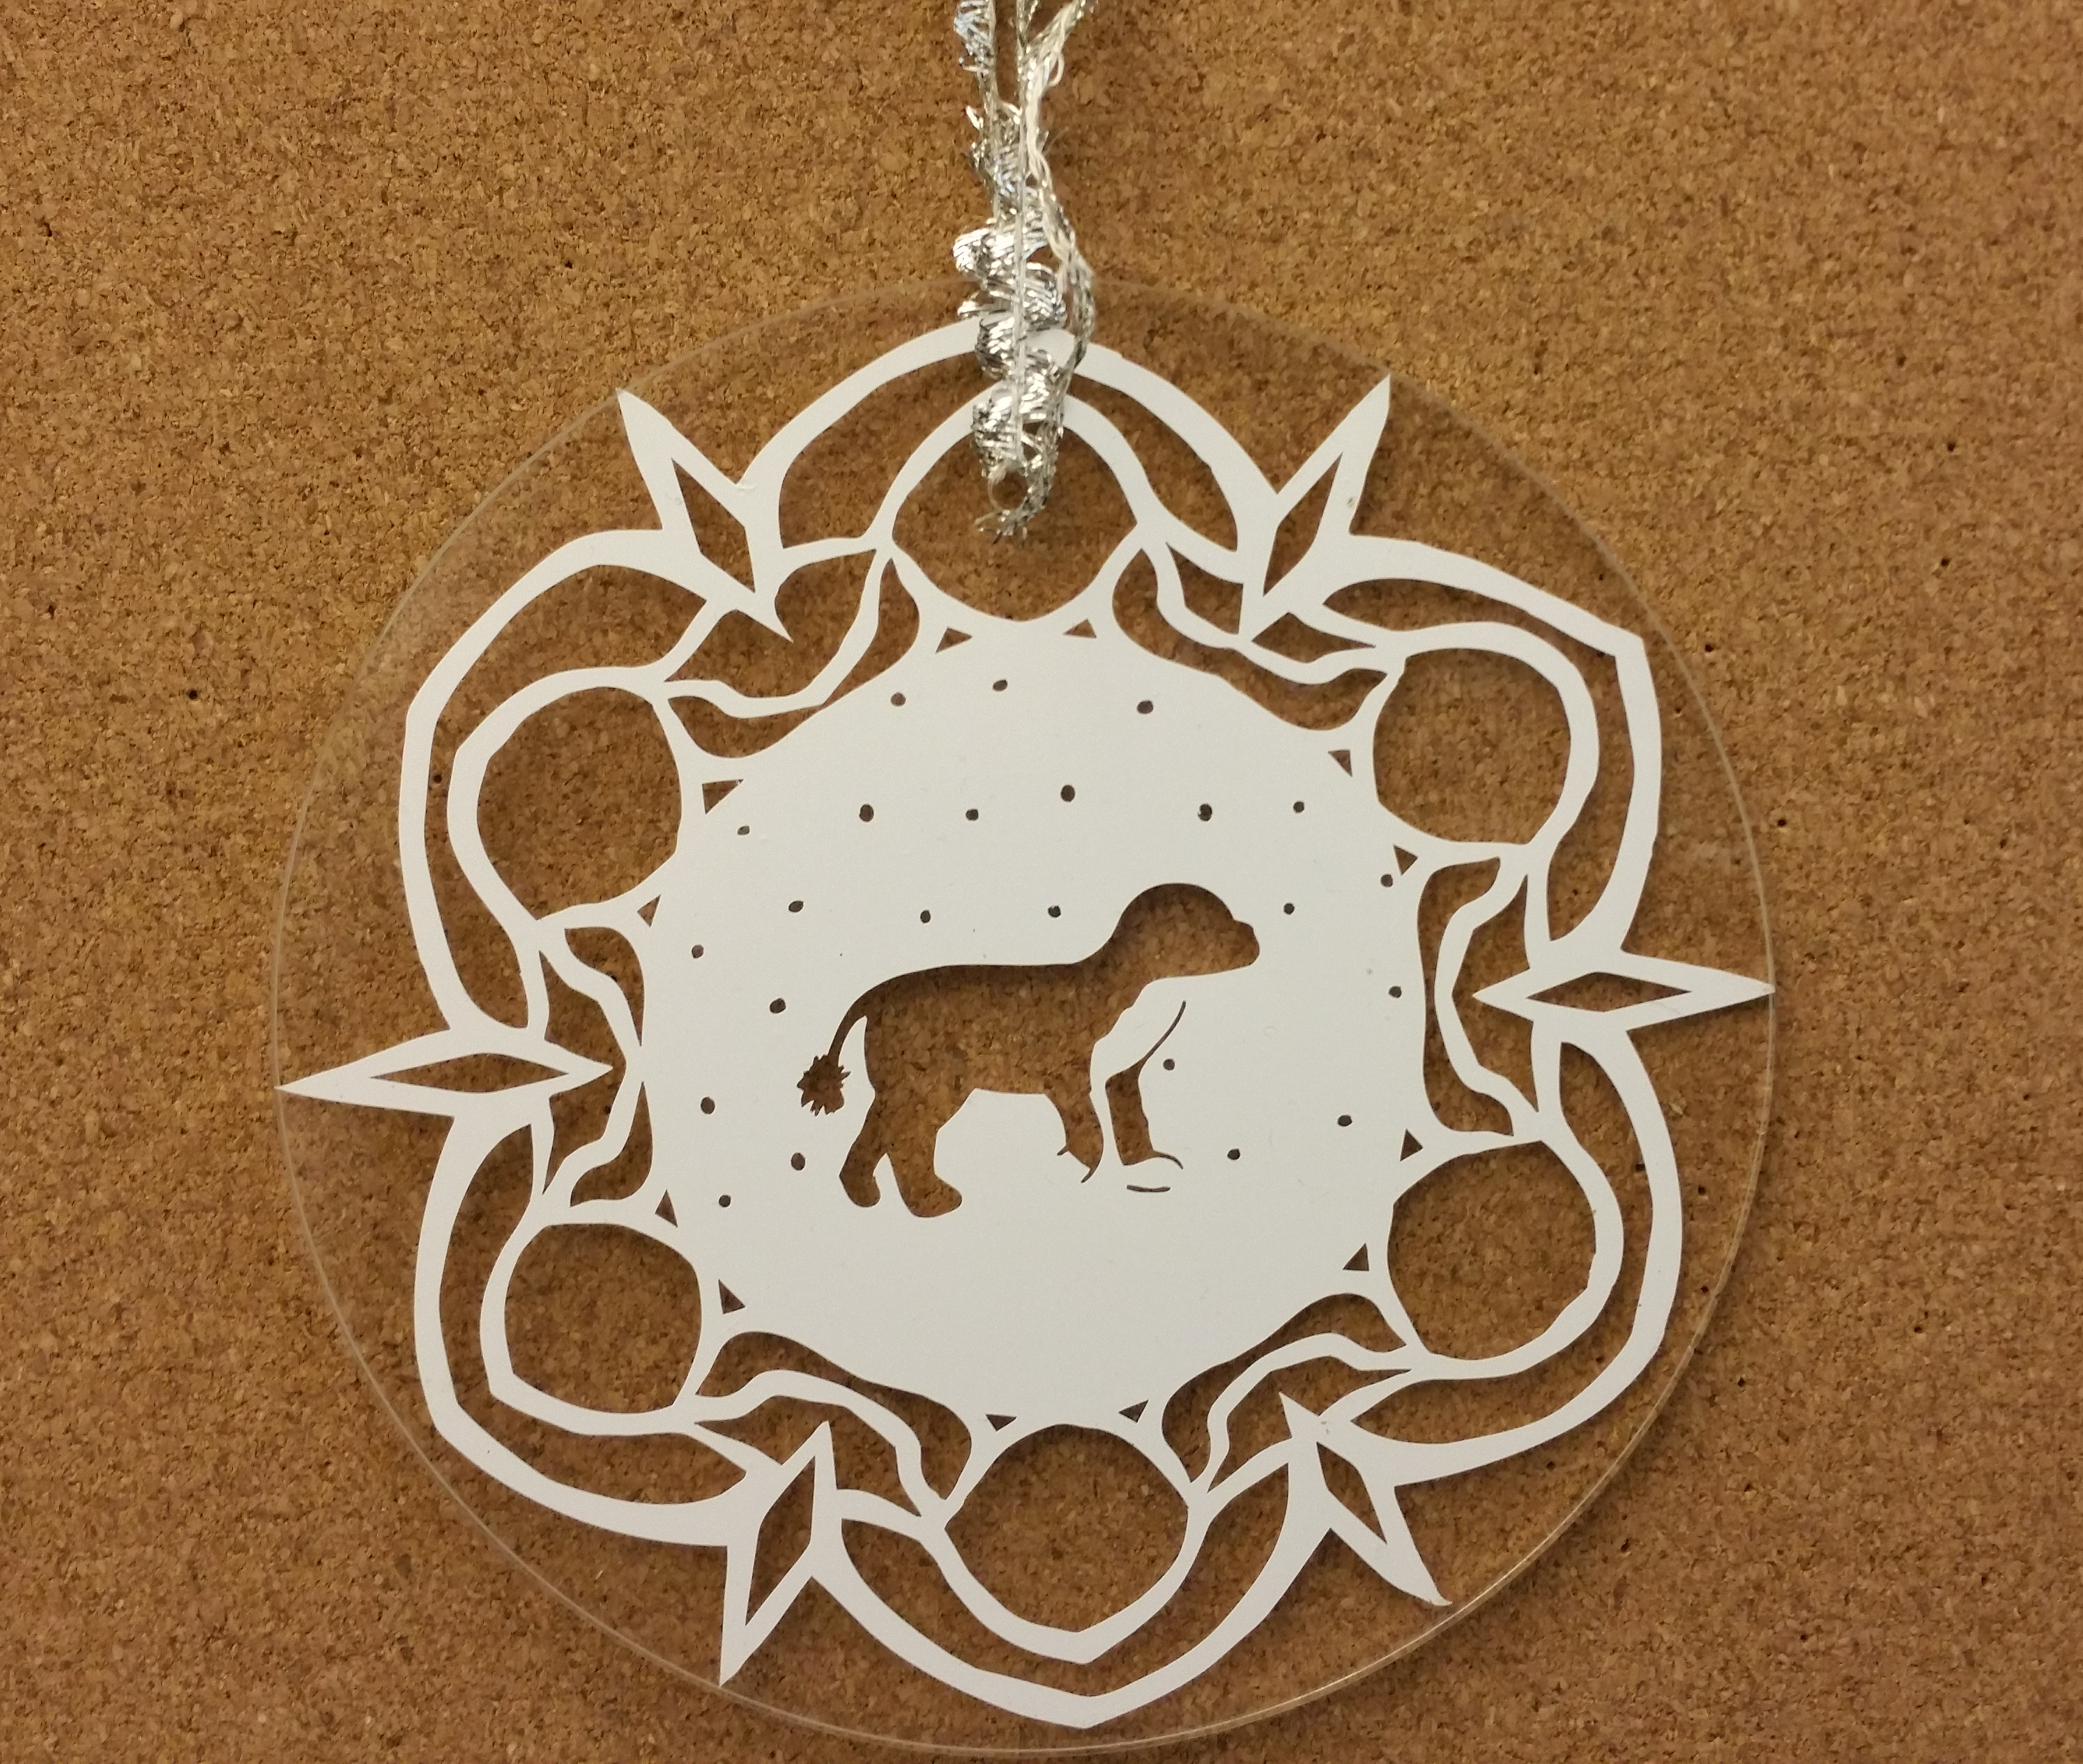 3d Printed Christmas Ornaments.Calling All Makers Announcing The First Ever White House 3d